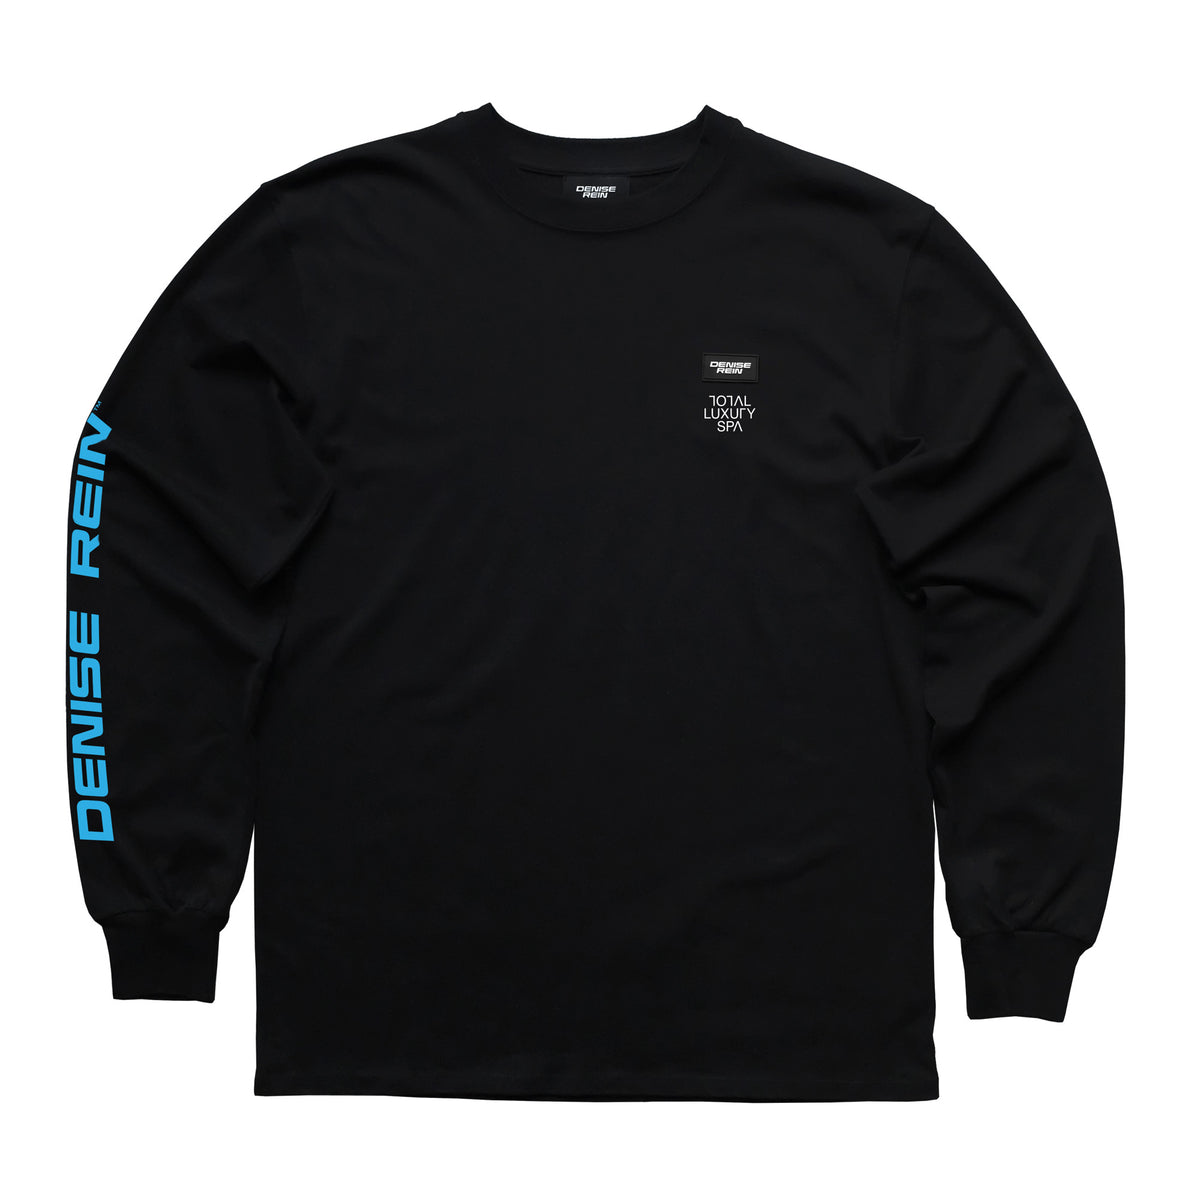 DENISE REIN - TOTAL LUXURY SPA L/S TEE - BLACK